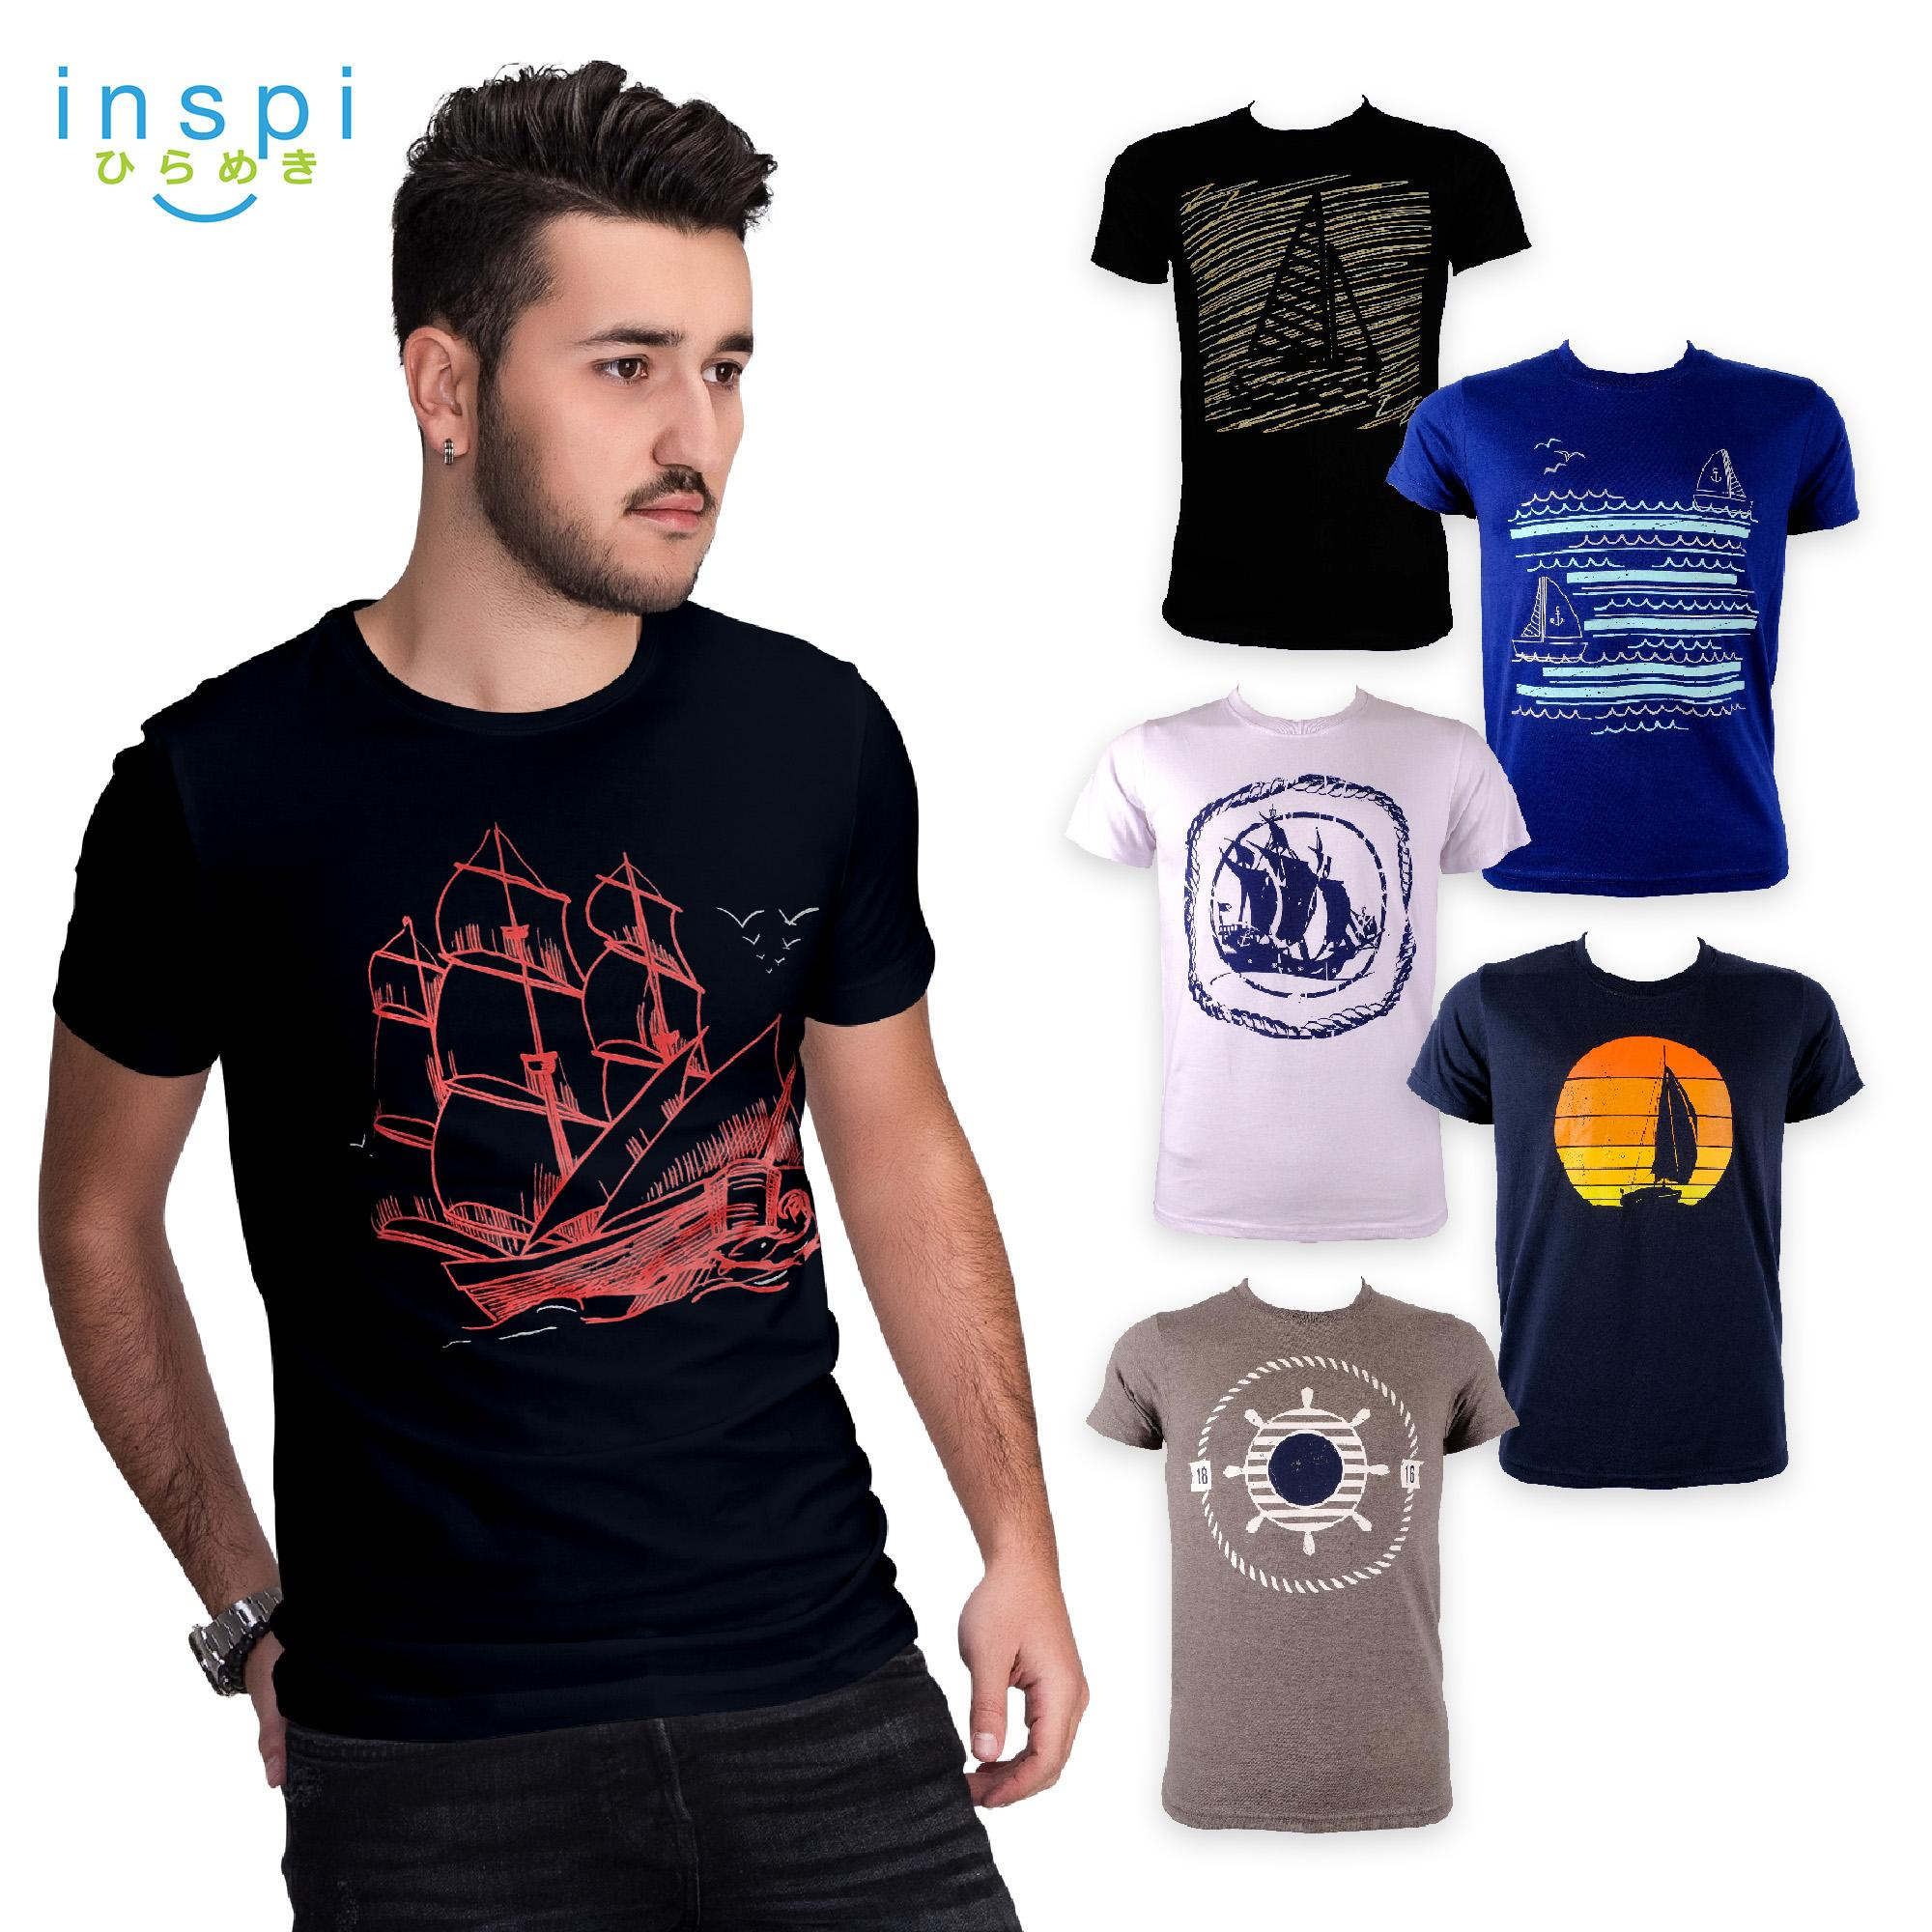 512aa9034c3 INSPI Tees Sailing Collection tshirt printed graphic tee Mens t shirt shirts  for men tshirts sale